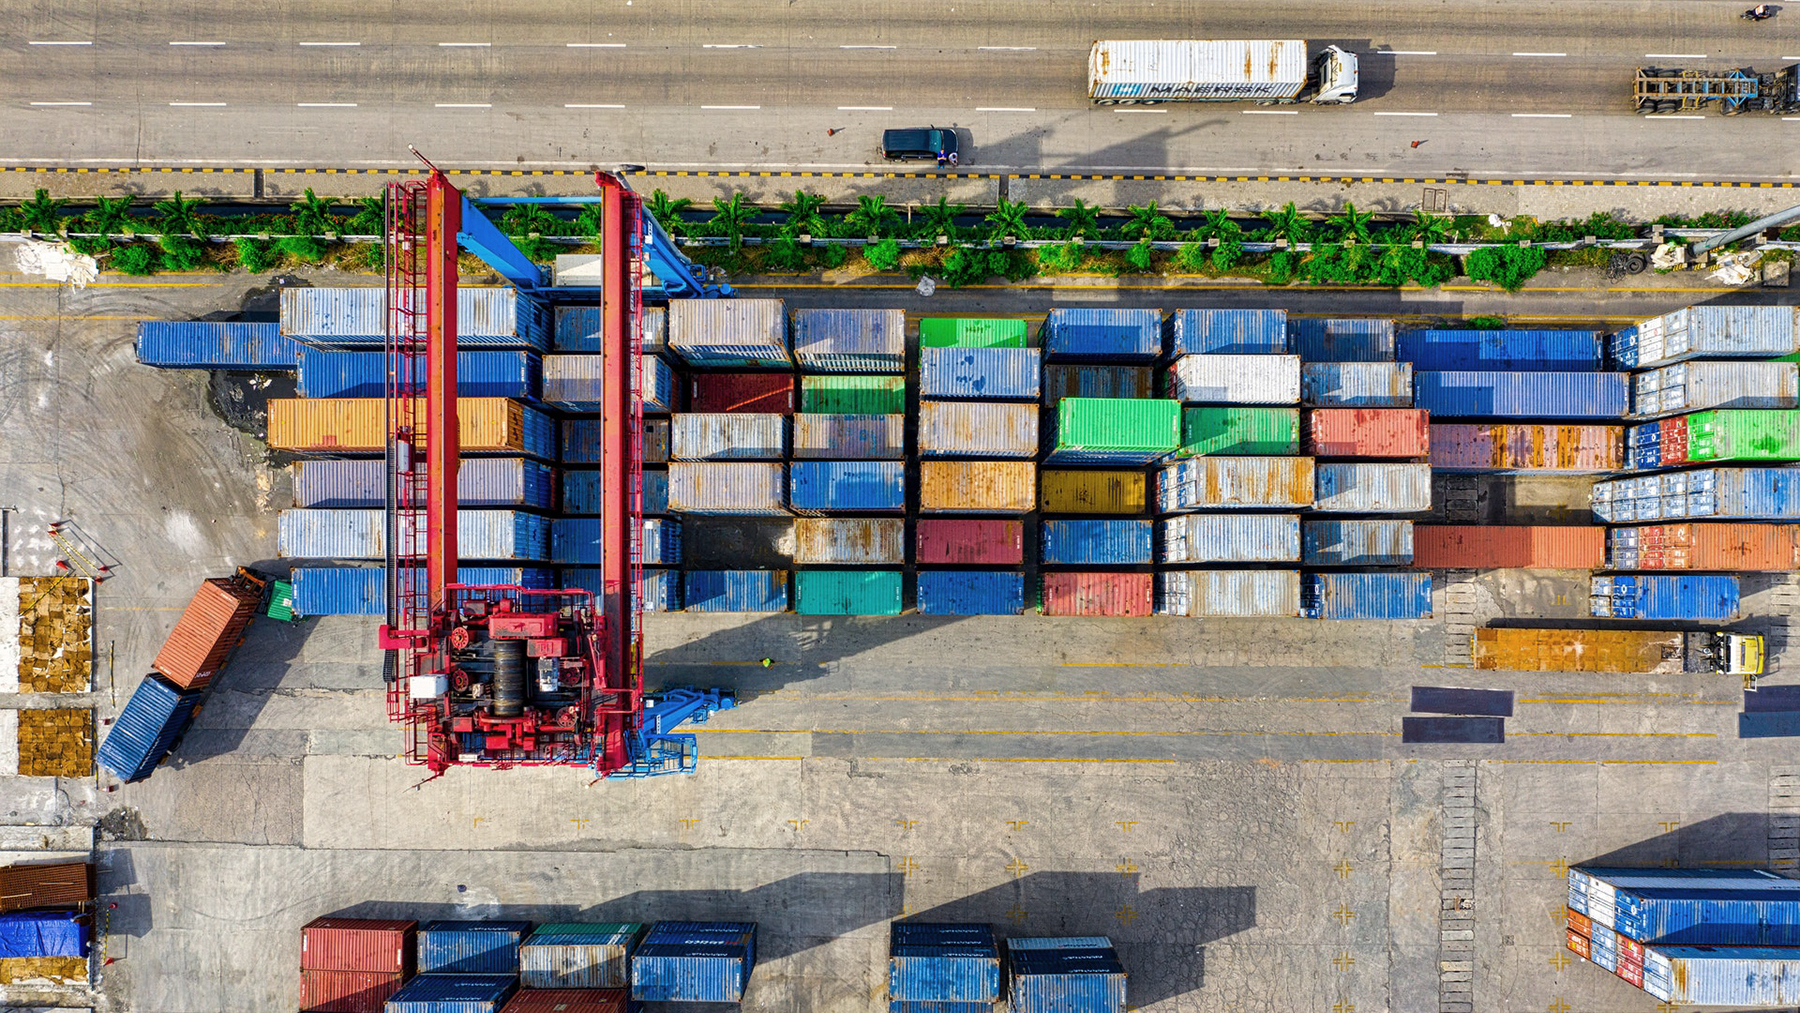 Shipping containers are staged for transport in Jakarta, Indonesia. Covid-19 has had sweeping impacts on the global supply chain, and psychologists who study human behavior are taking note. (Photo by Tom Fisk from Pexels)